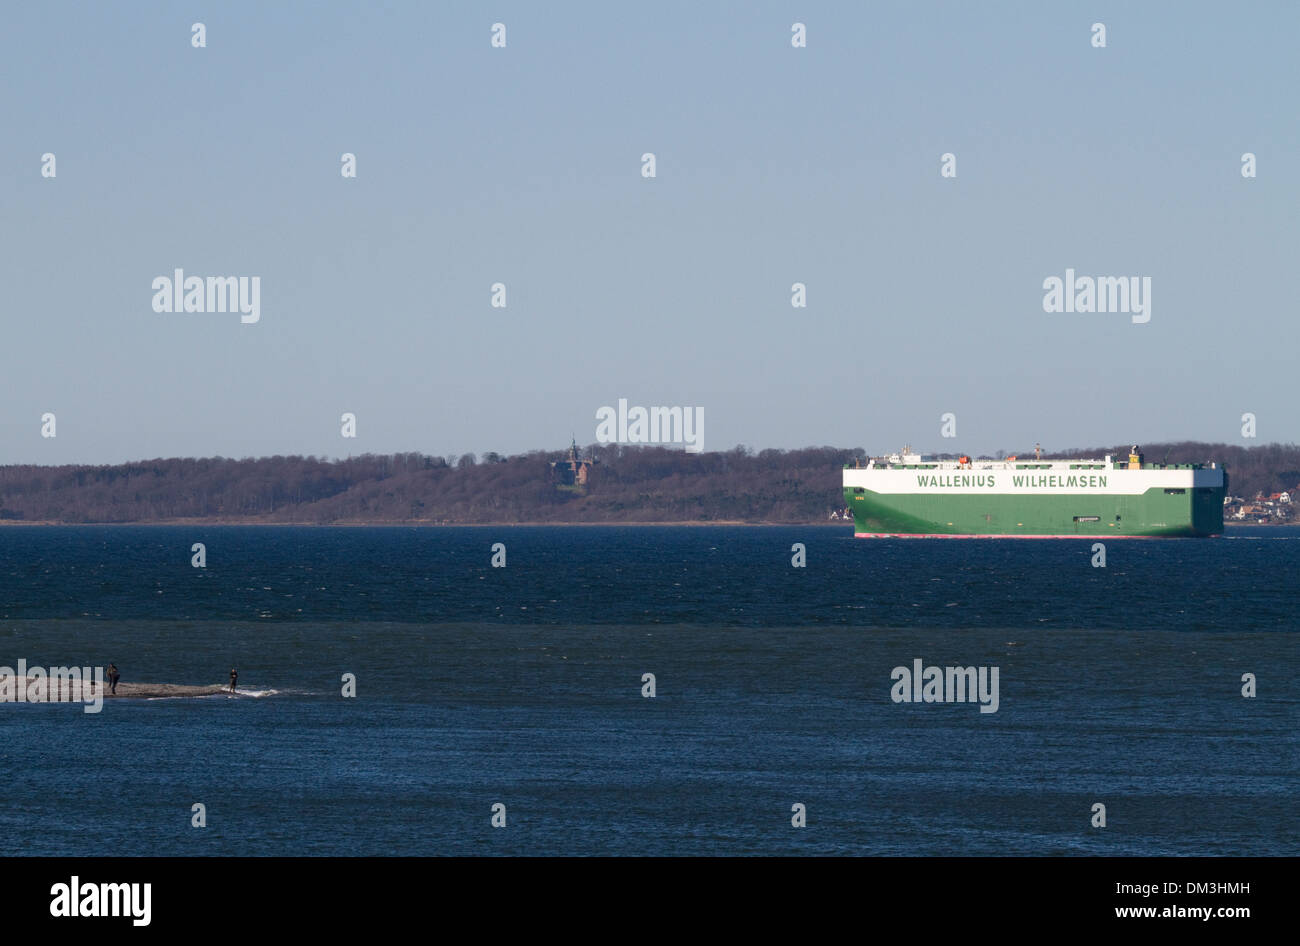 The Car Carrier M/V Bess off Elsinore. - Stock Image